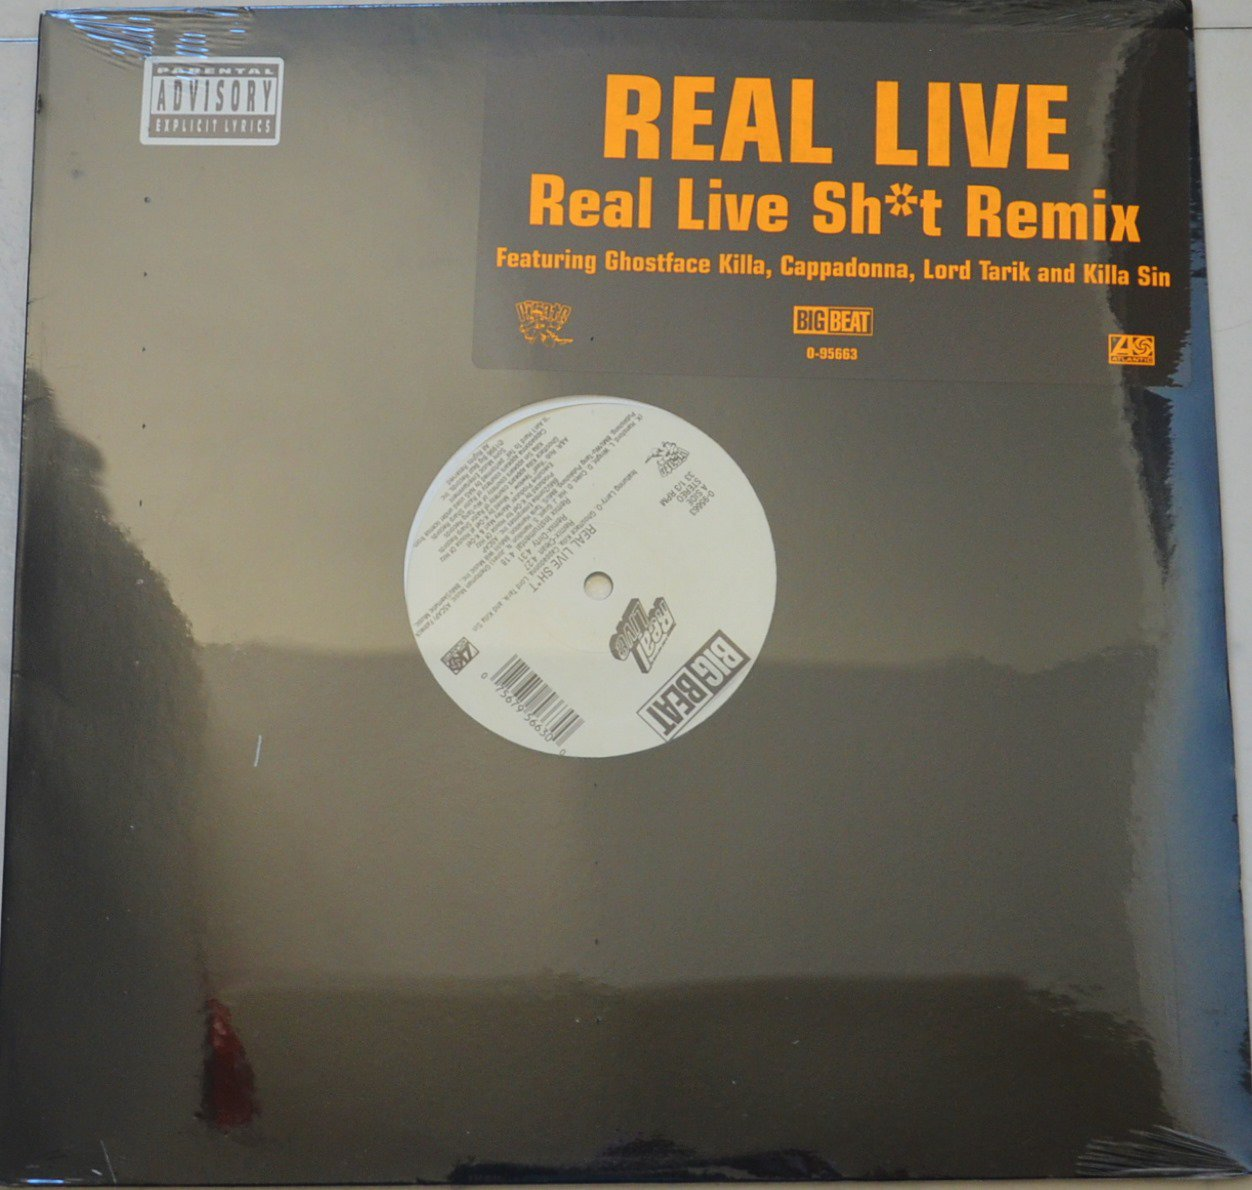 REAL LIVE / REAL LIVE SH*T (REMIX) / POP THE TRUNK (PROD BY K-DEF) (12